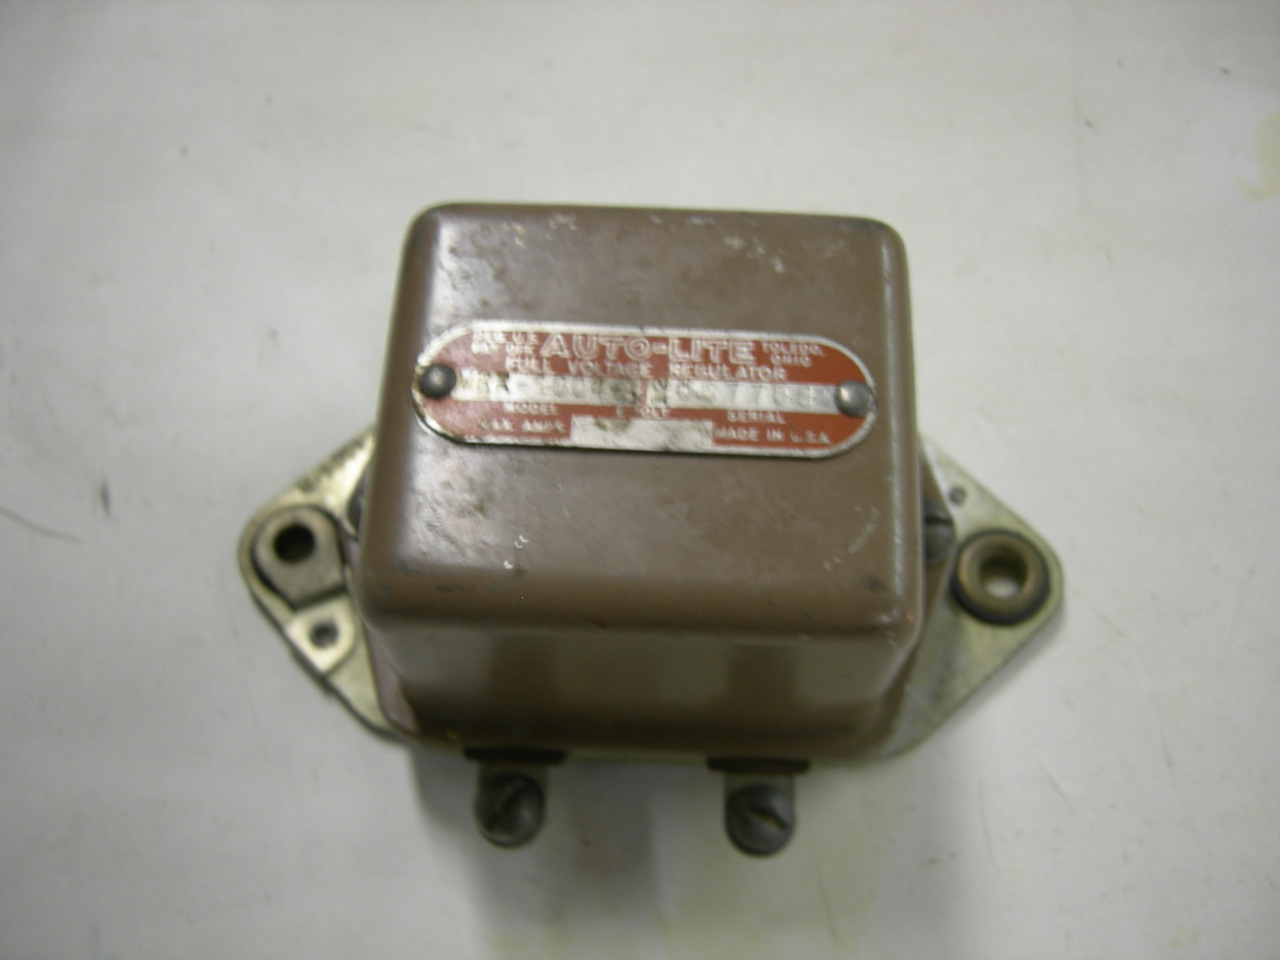 1940 – 42 Willys voltage regulator autolite NOS VRR4004A (a VRR4004a)